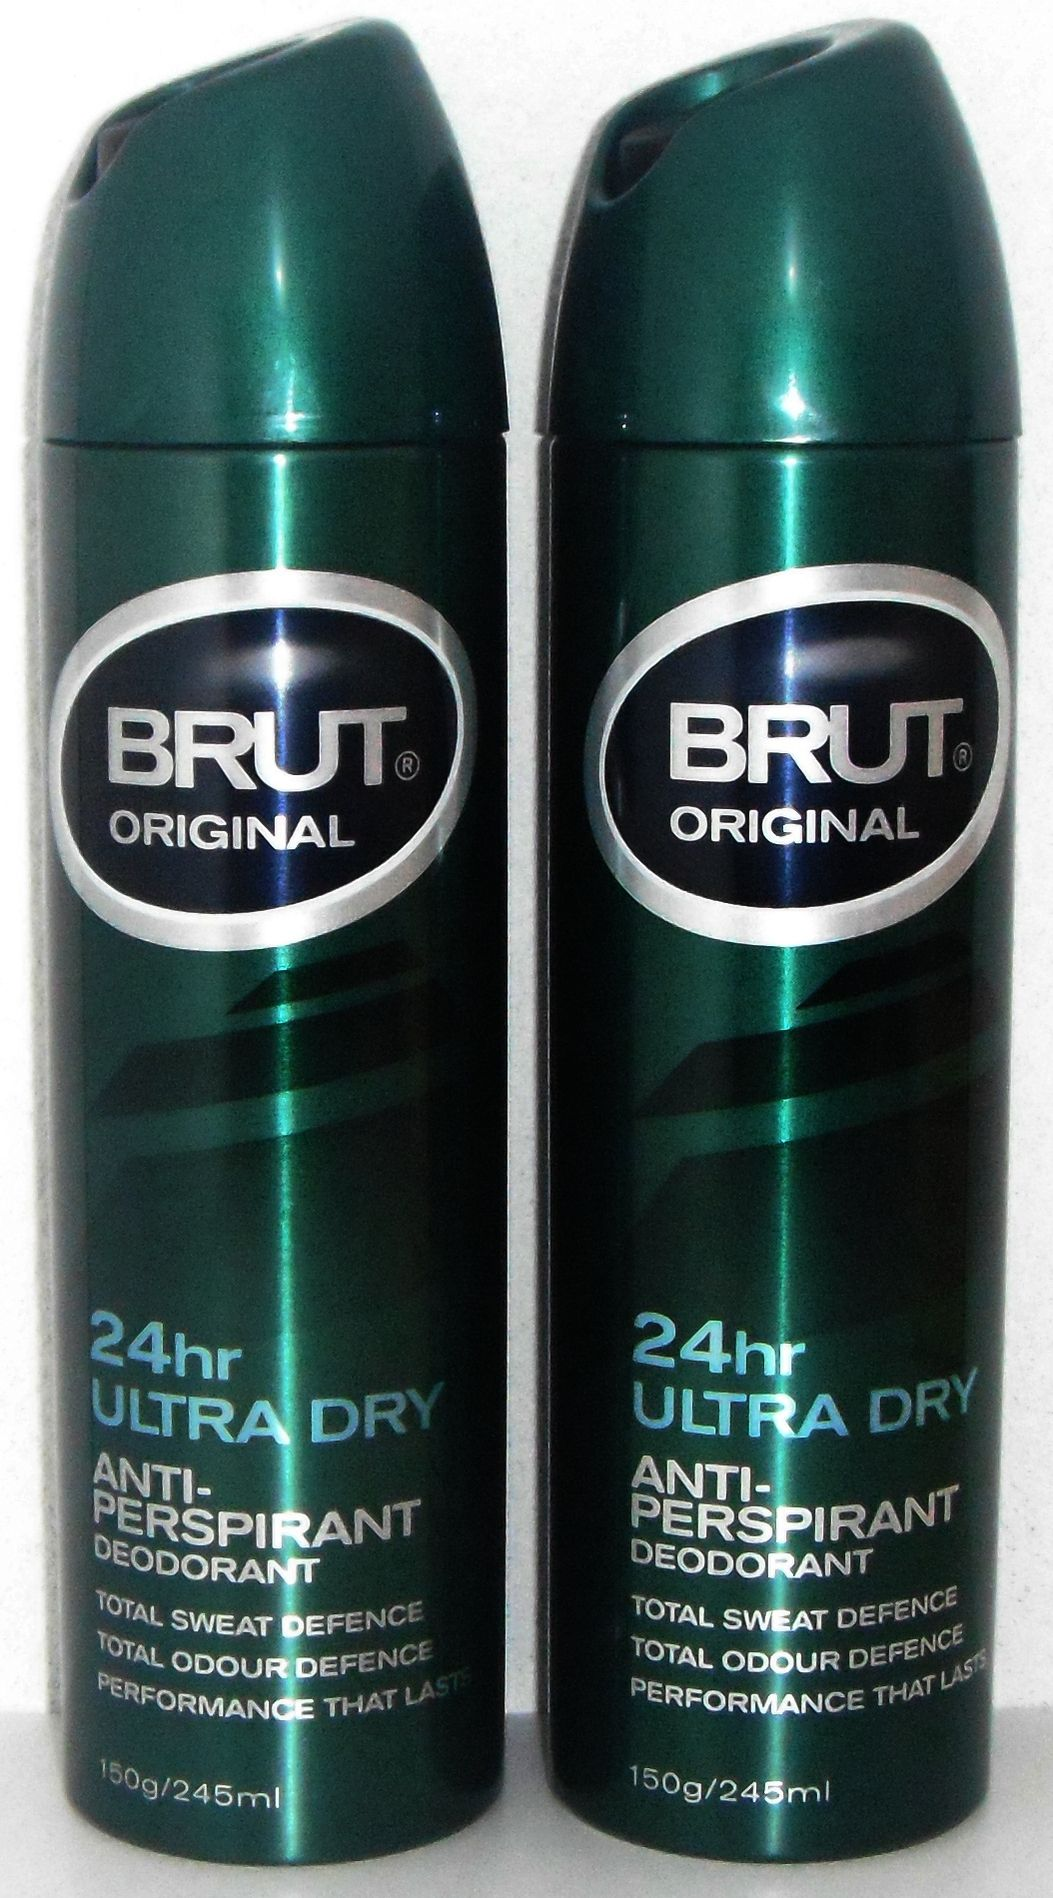 Brut (cologne) - The complete information and online sale